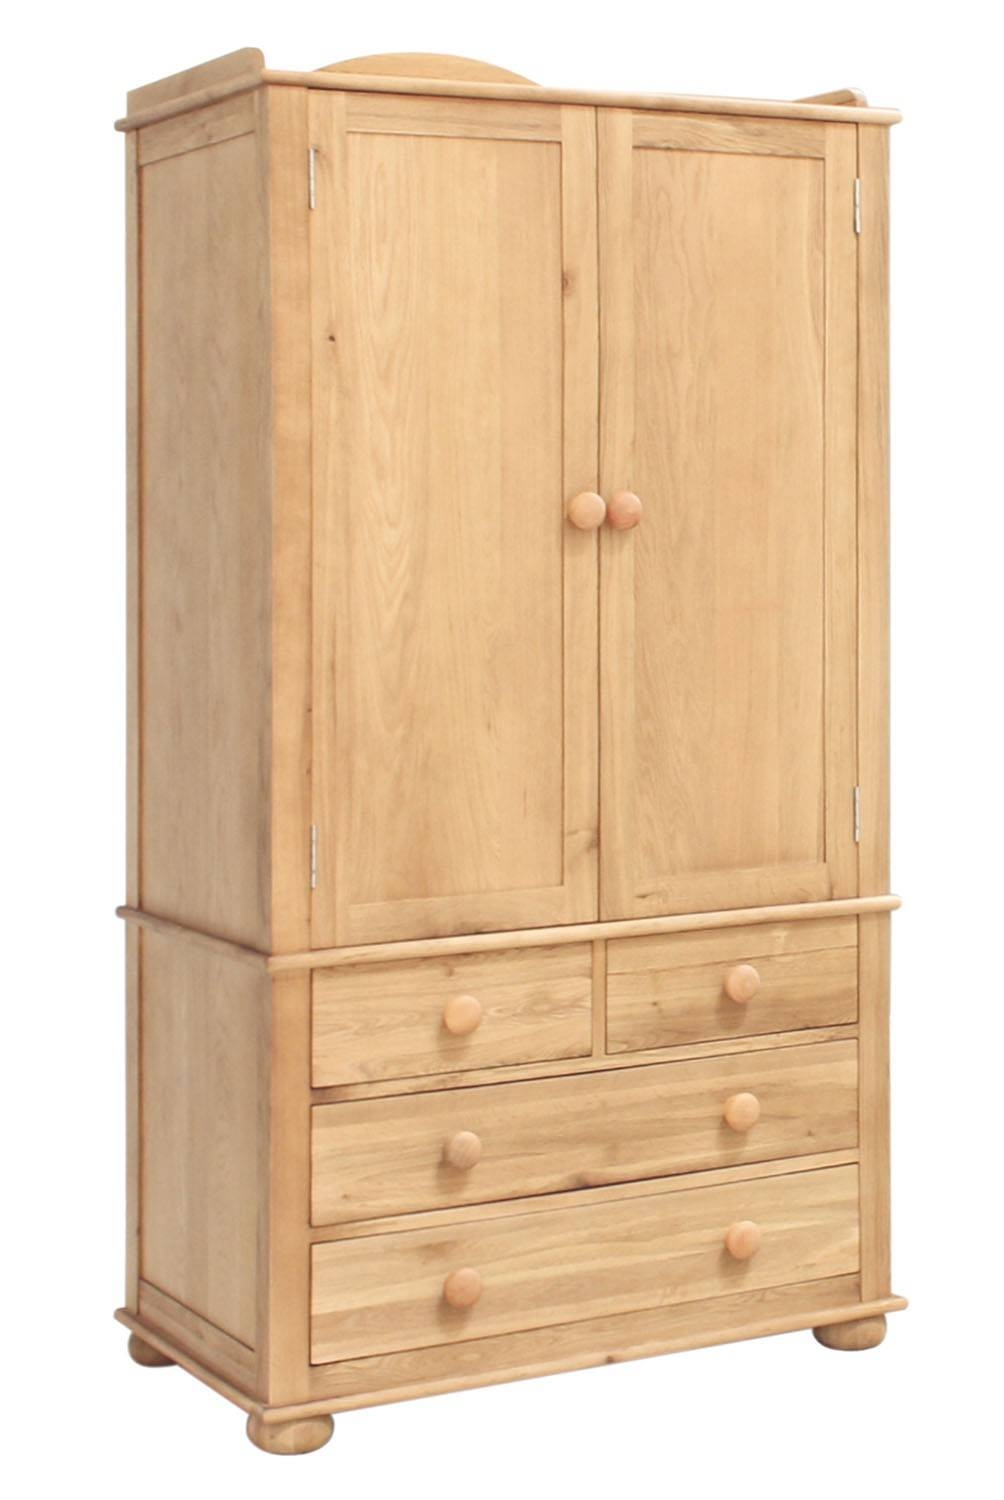 Amelie Oak Childrens Double Wardrobe | Hallowood throughout Childrens Double Rail Wardrobes (Image 3 of 30)